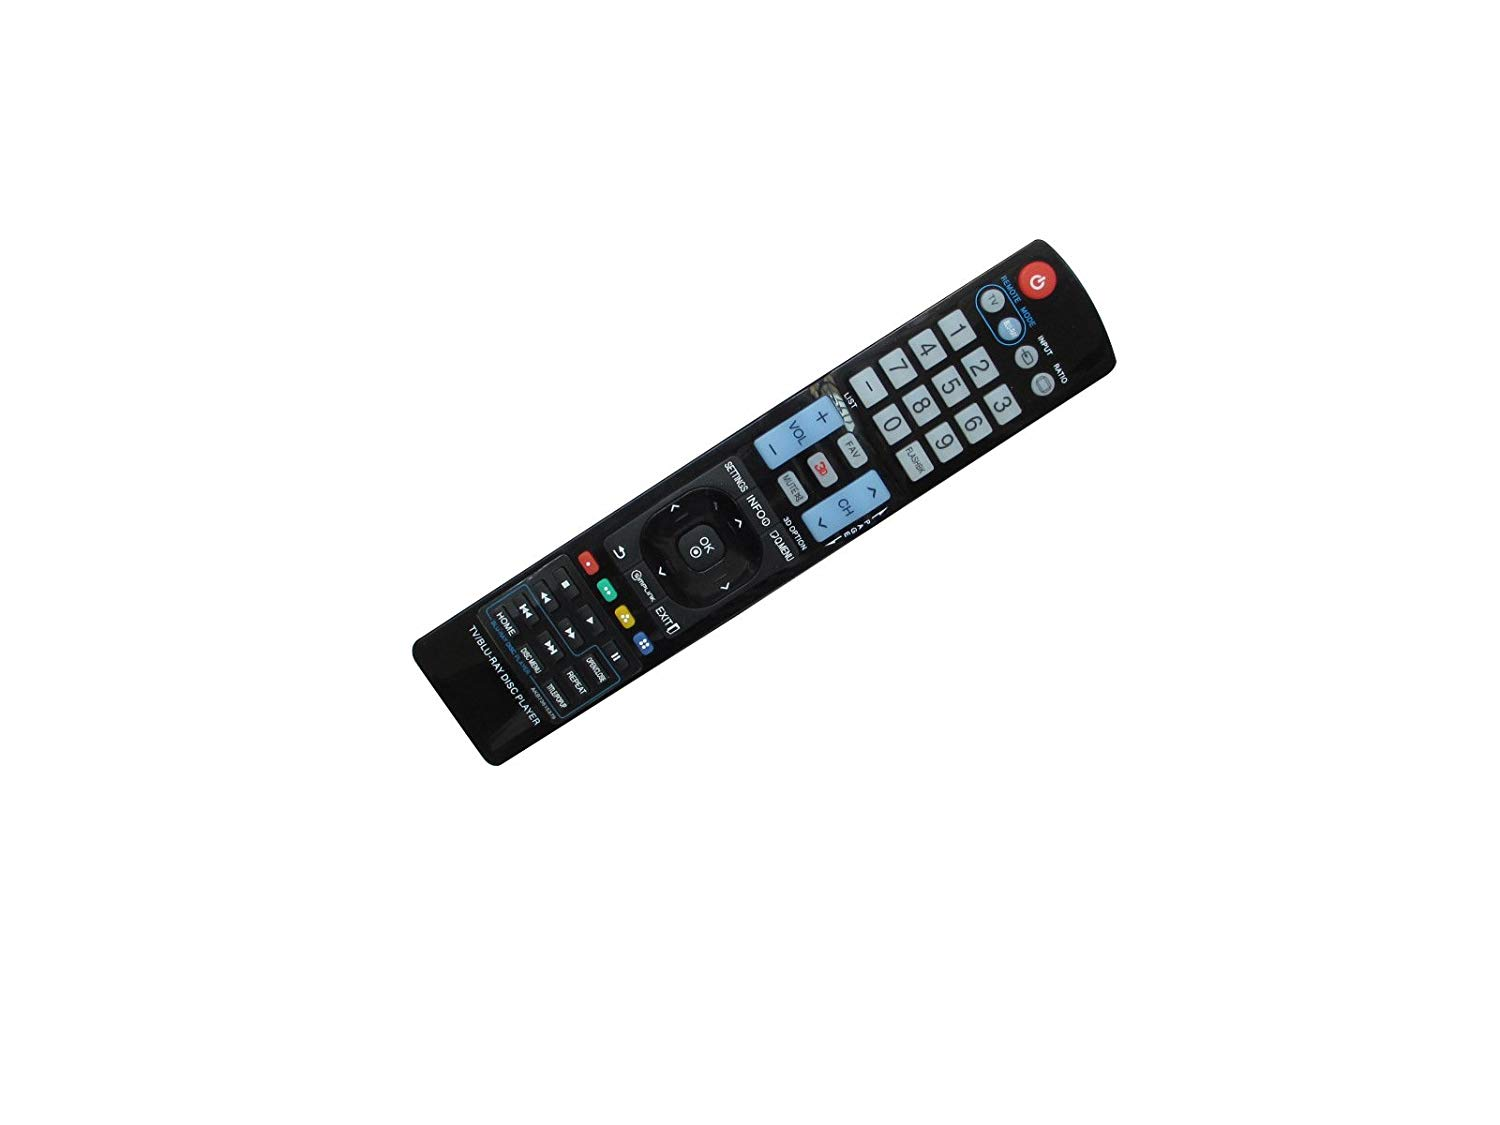 Cheap Lg Dvd Player Remote Code, find Lg Dvd Player Remote